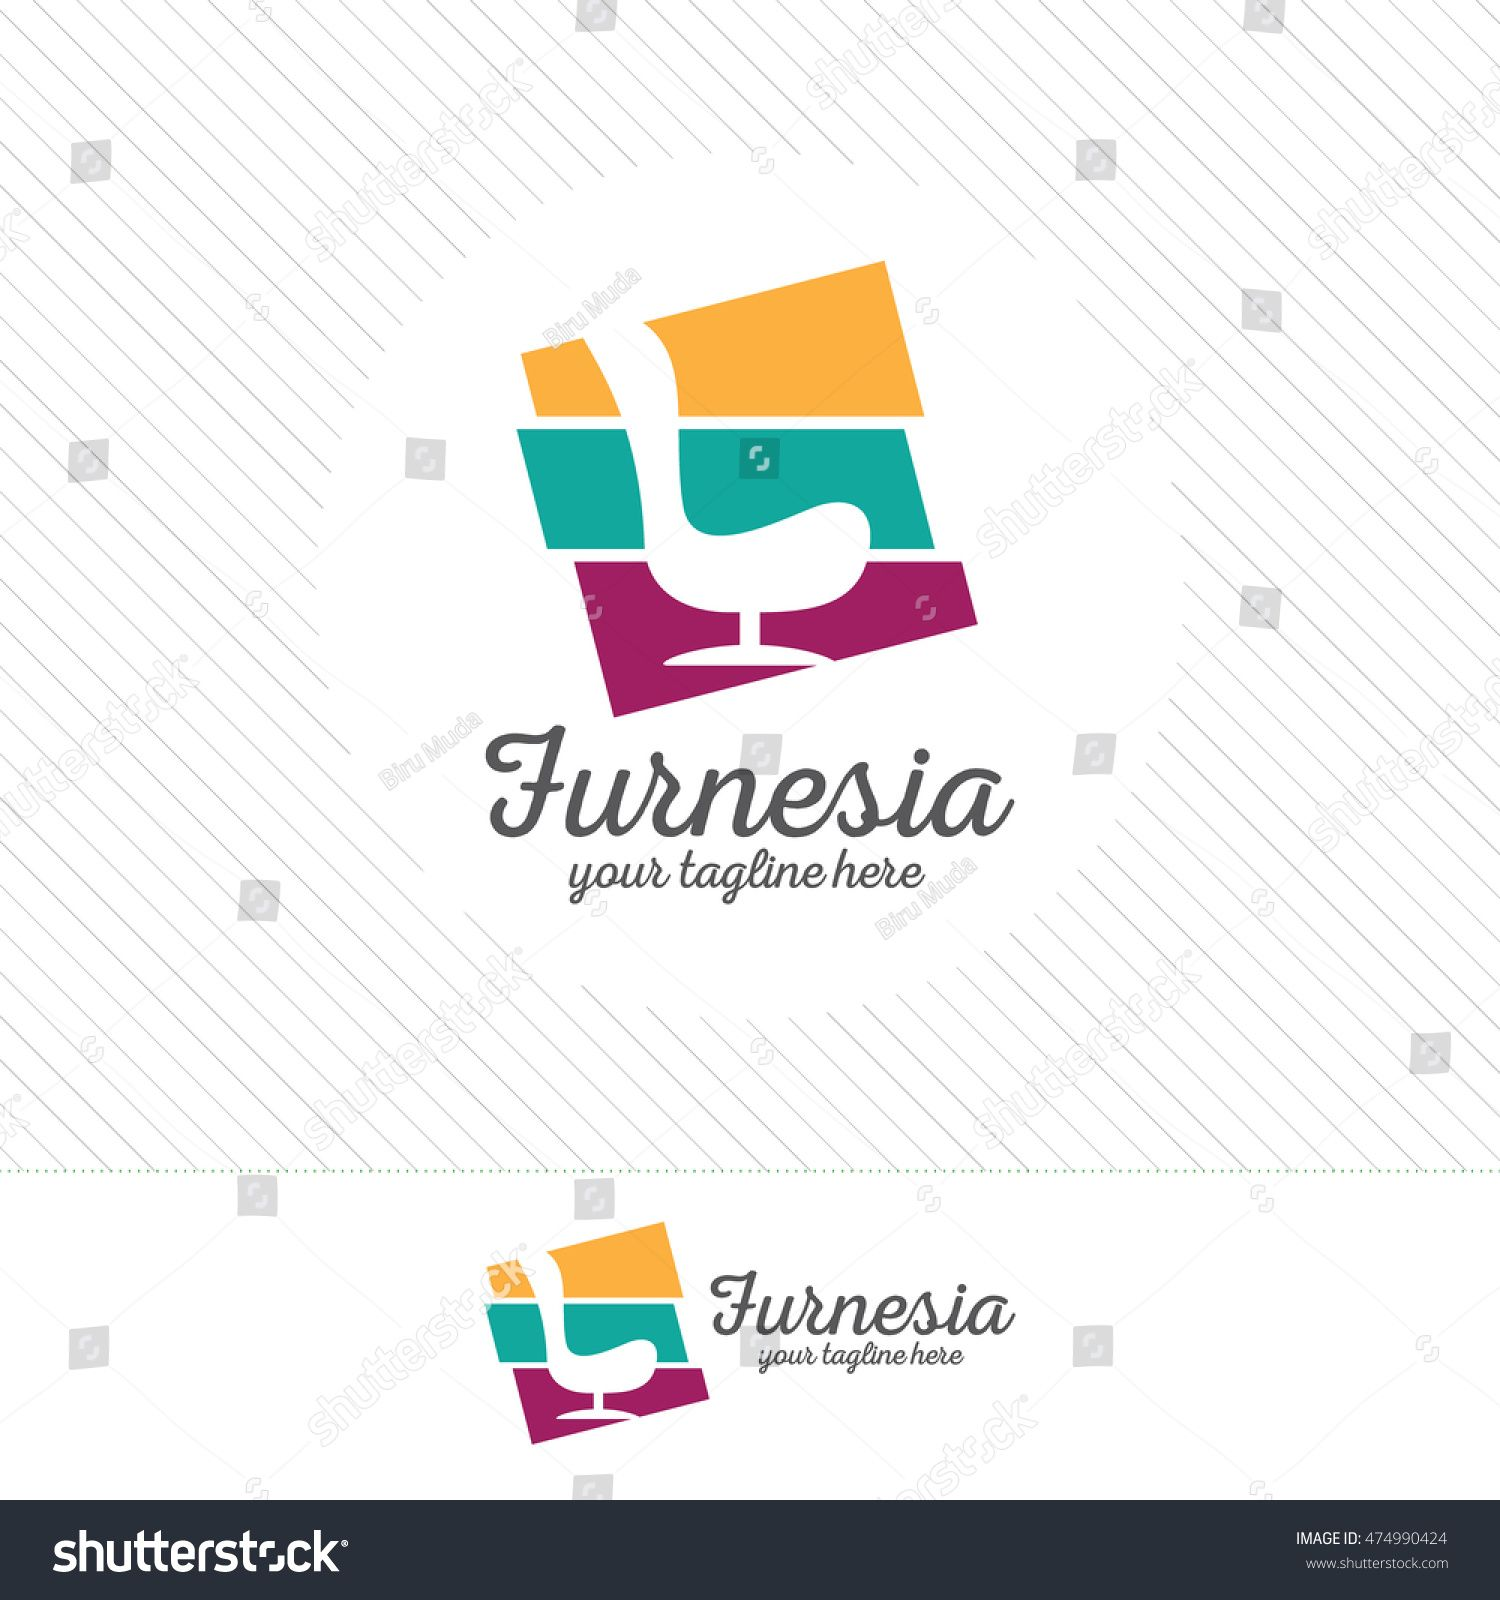 Abstract furniture logo design concept. Symbol and icon of